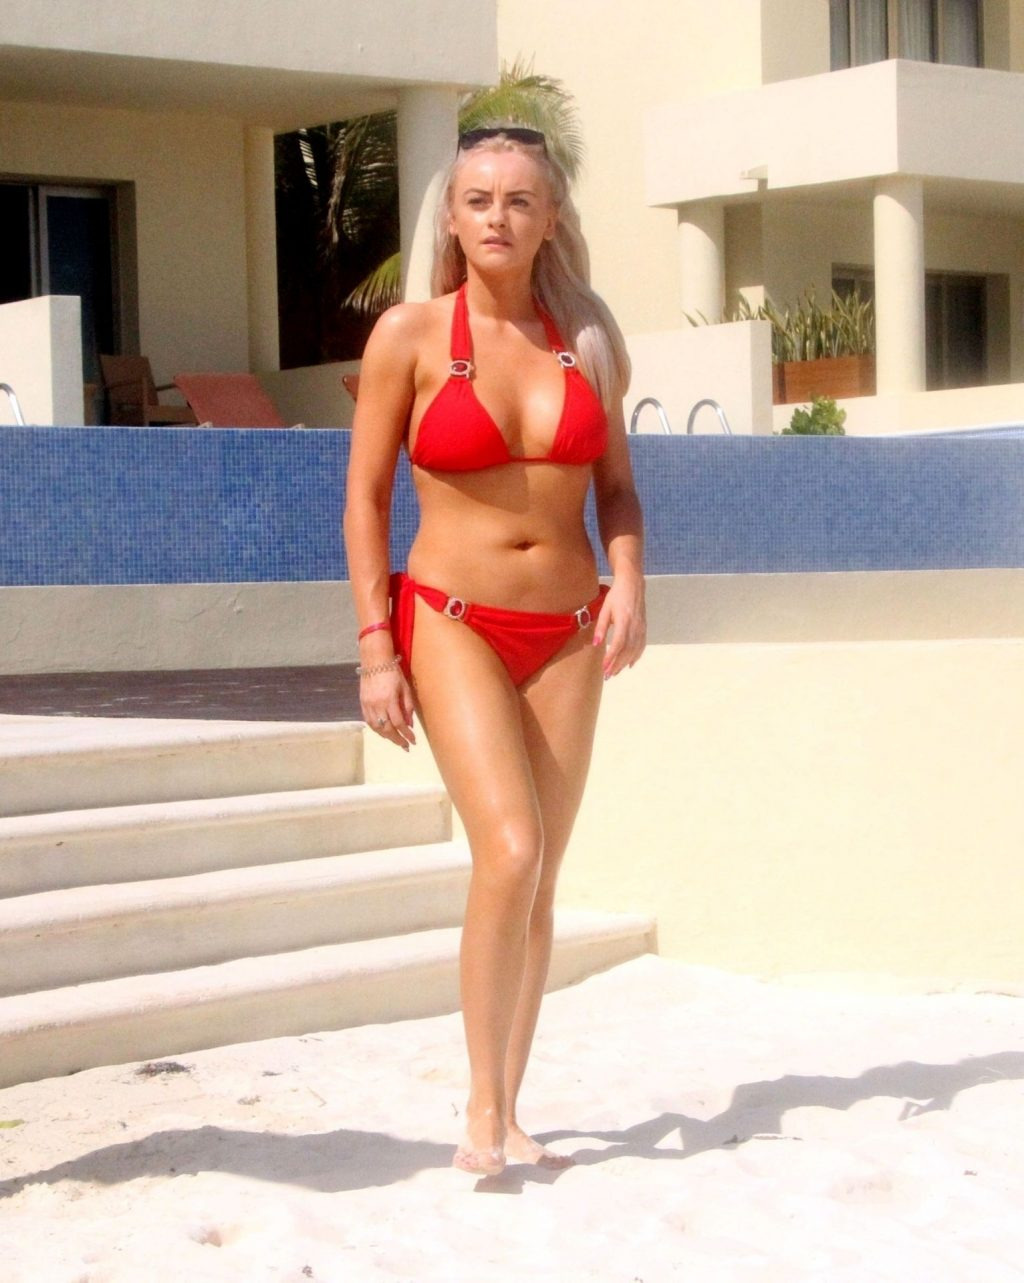 Former Coronation Street Star Katie McGlynn Shows Off Her Sexy Figure in Mexico (30 Photos)